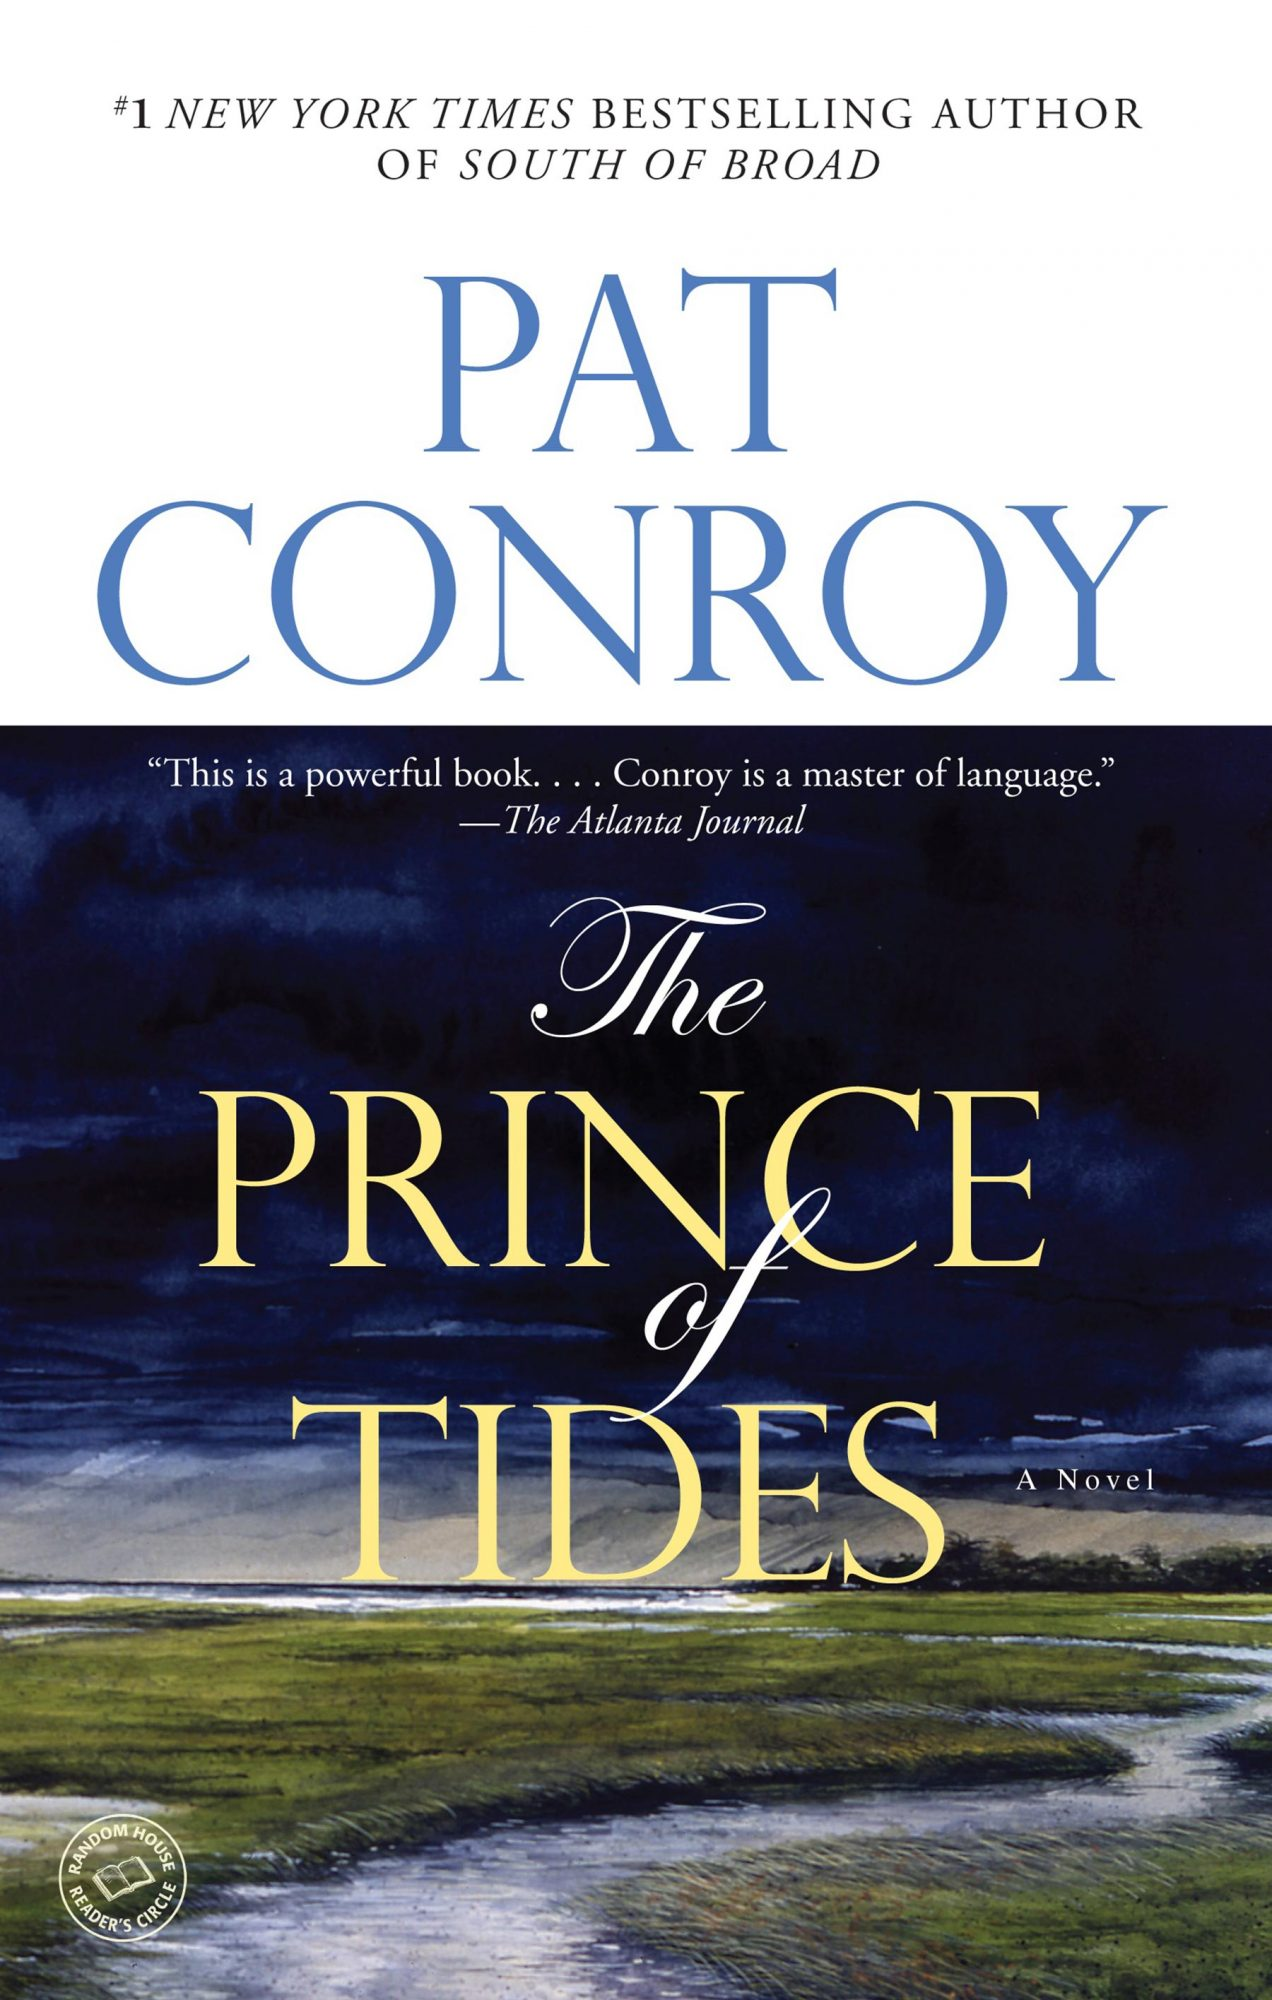 The Prince of Tides - paperback (12/28/87)by Pat Conroy